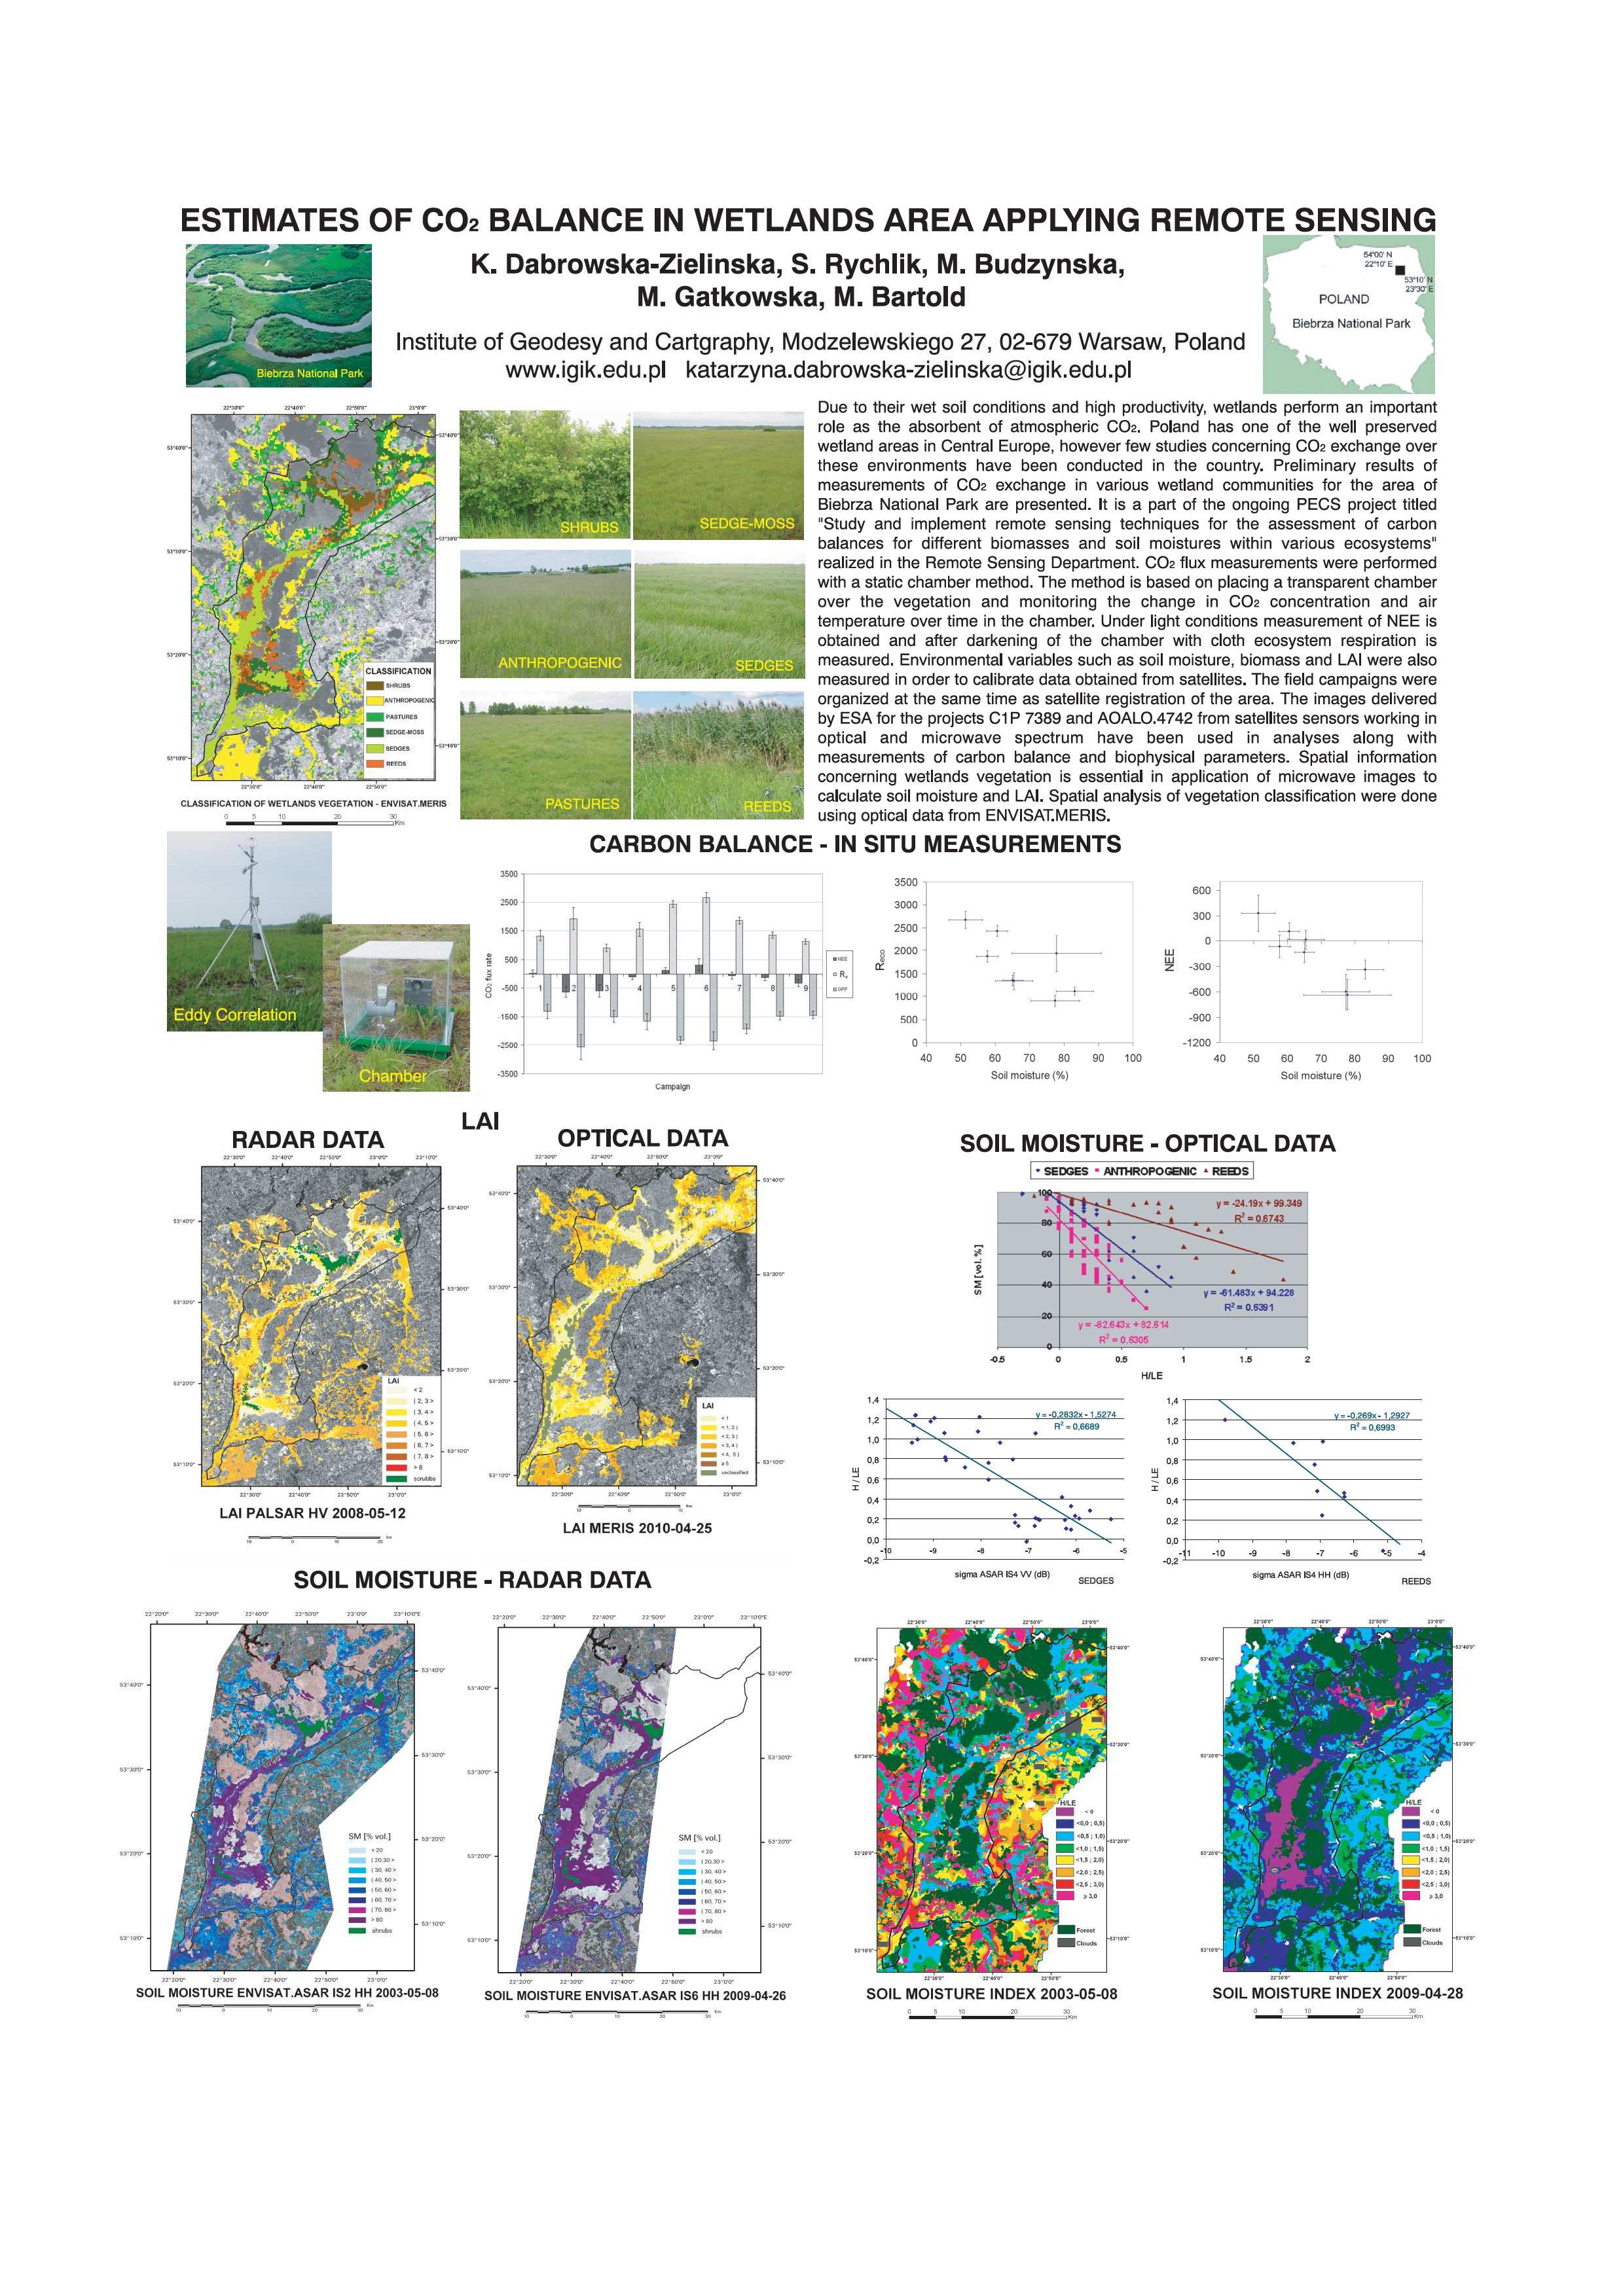 remote sensing research papers Remote sensing of environment serves journal is on biophysical and quantitative approaches to remote sensing at in addition to original research papers.